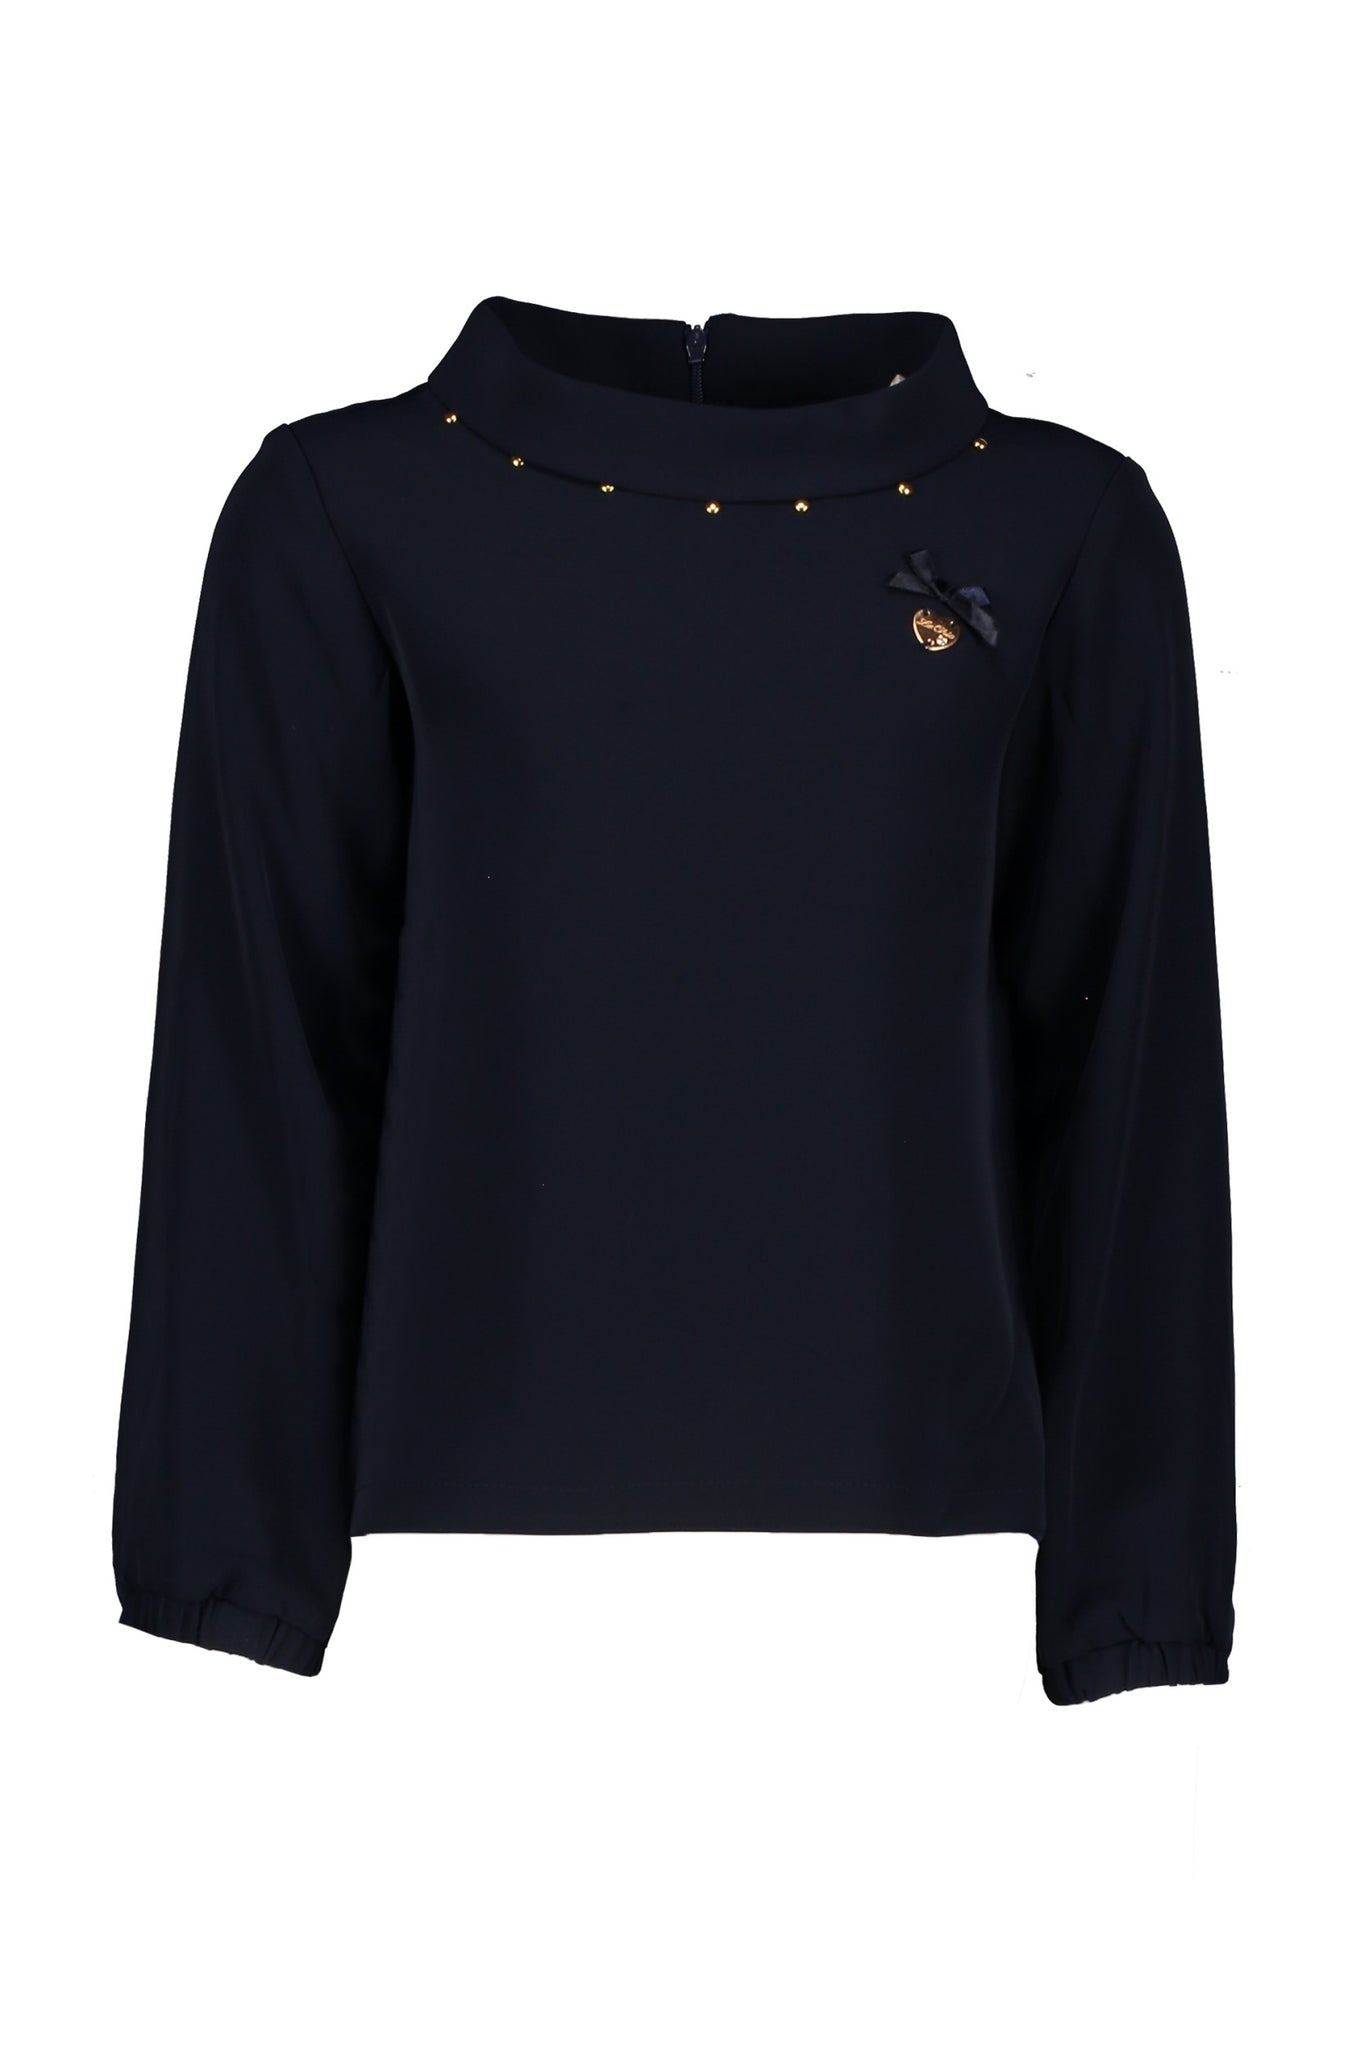 LE CHIC Girls Navy Mockneck Top